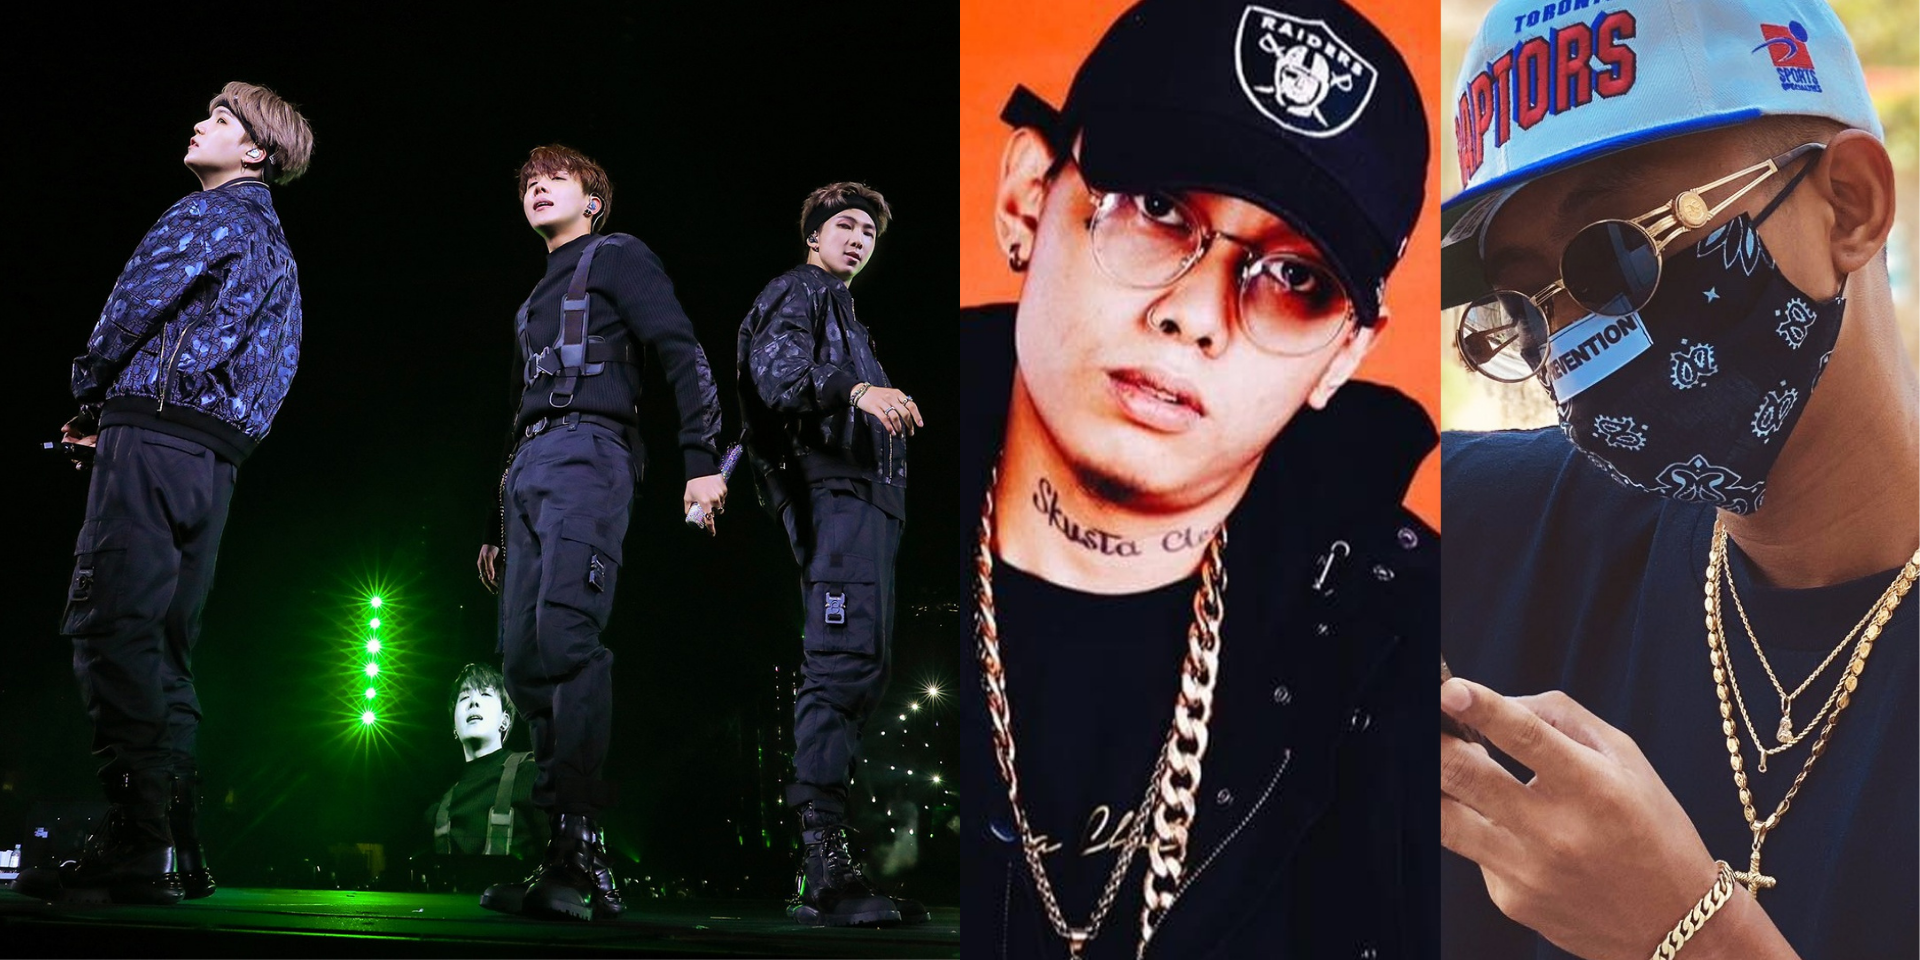 Two Ex Battalion members face plagiarism allegations of BTS 'Ddaeng' over 'Deym'